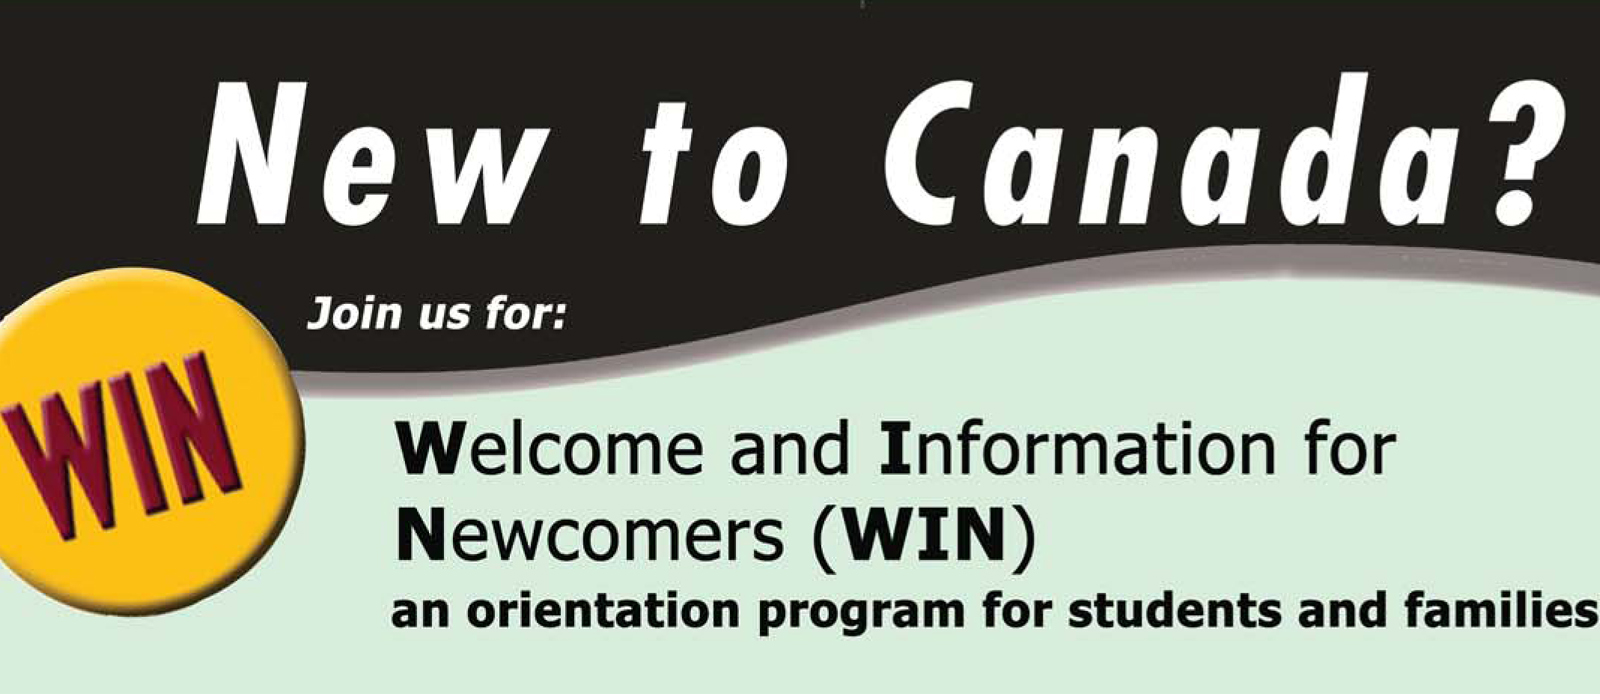 WIN New to Canada  - Welcome and Information for Newcomers